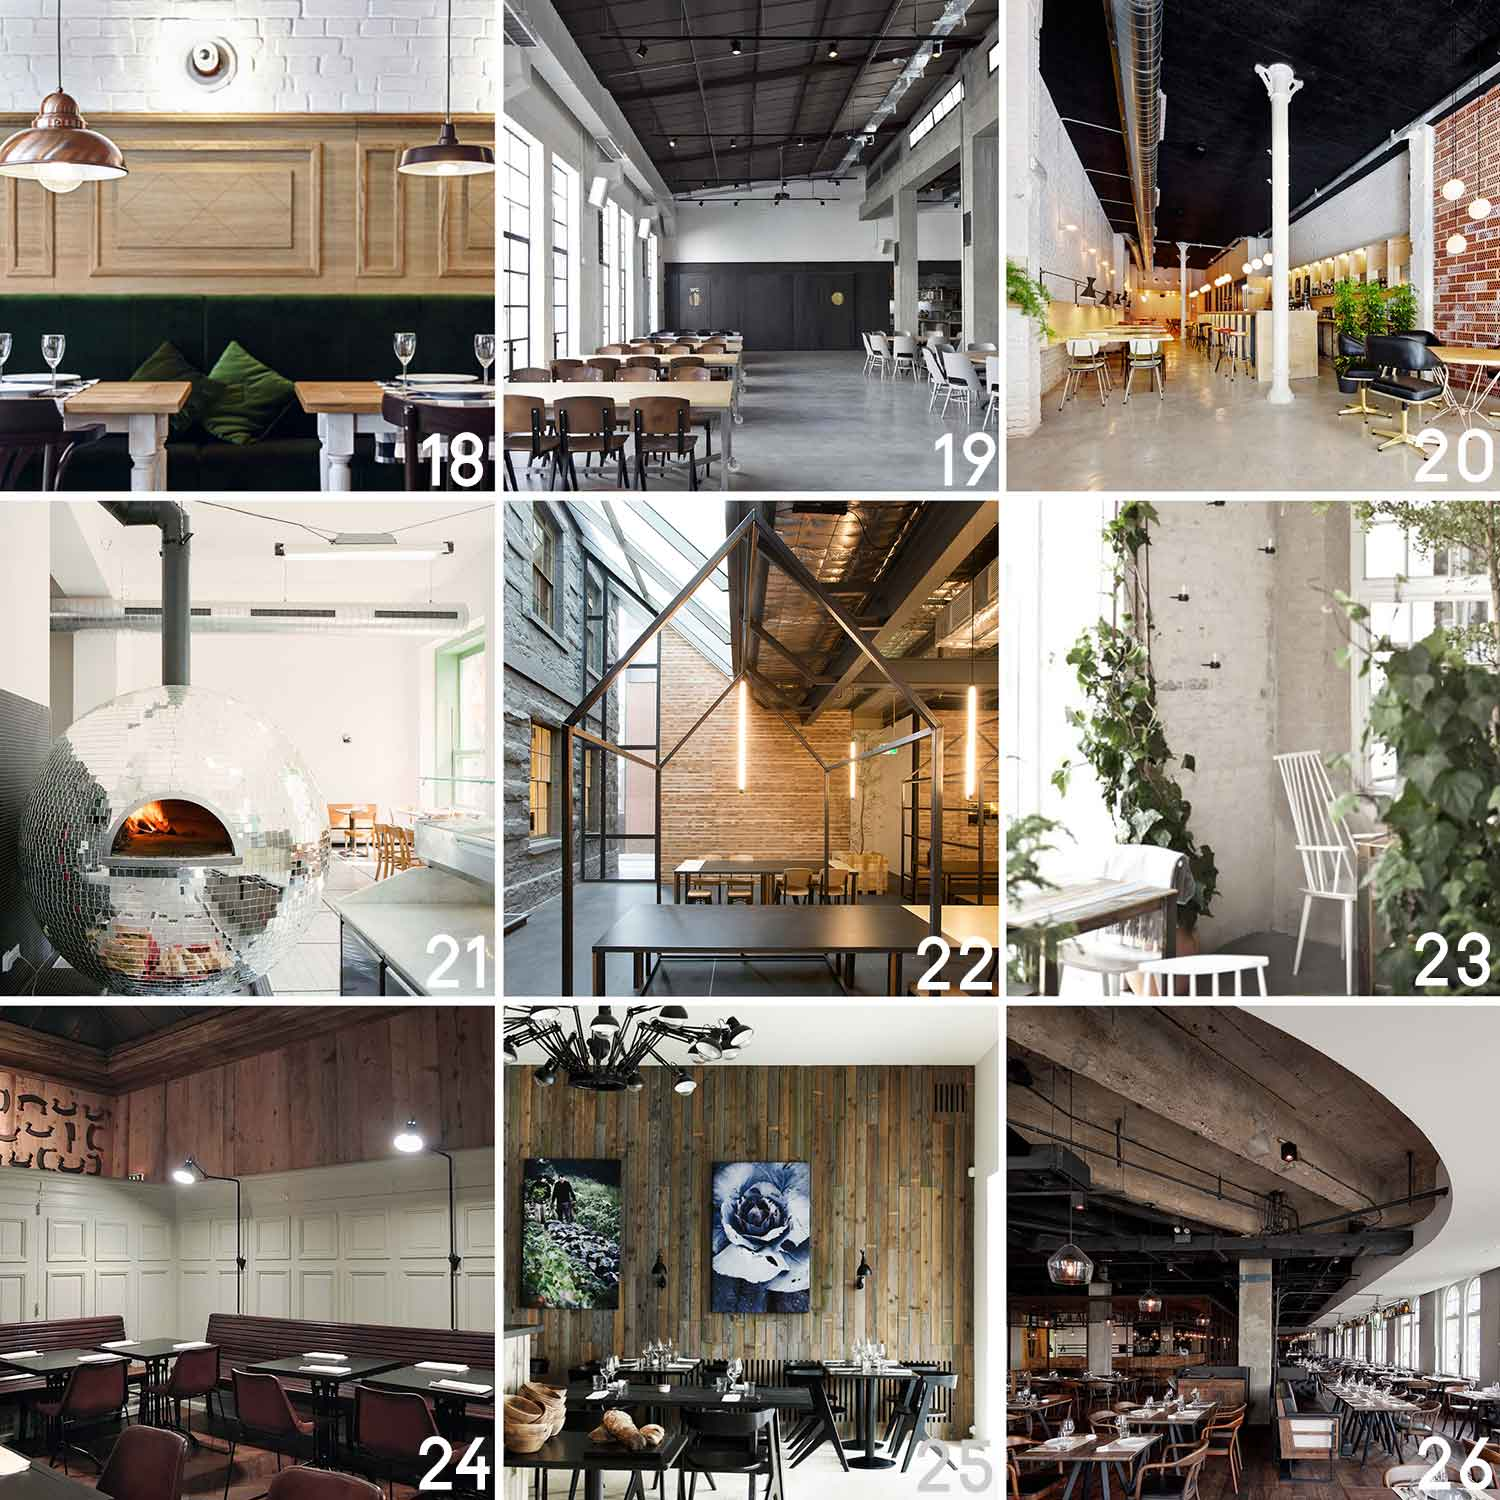 Hospitality, Retail and Commercial Interior Design | Yellowtrace 2013 Archive.